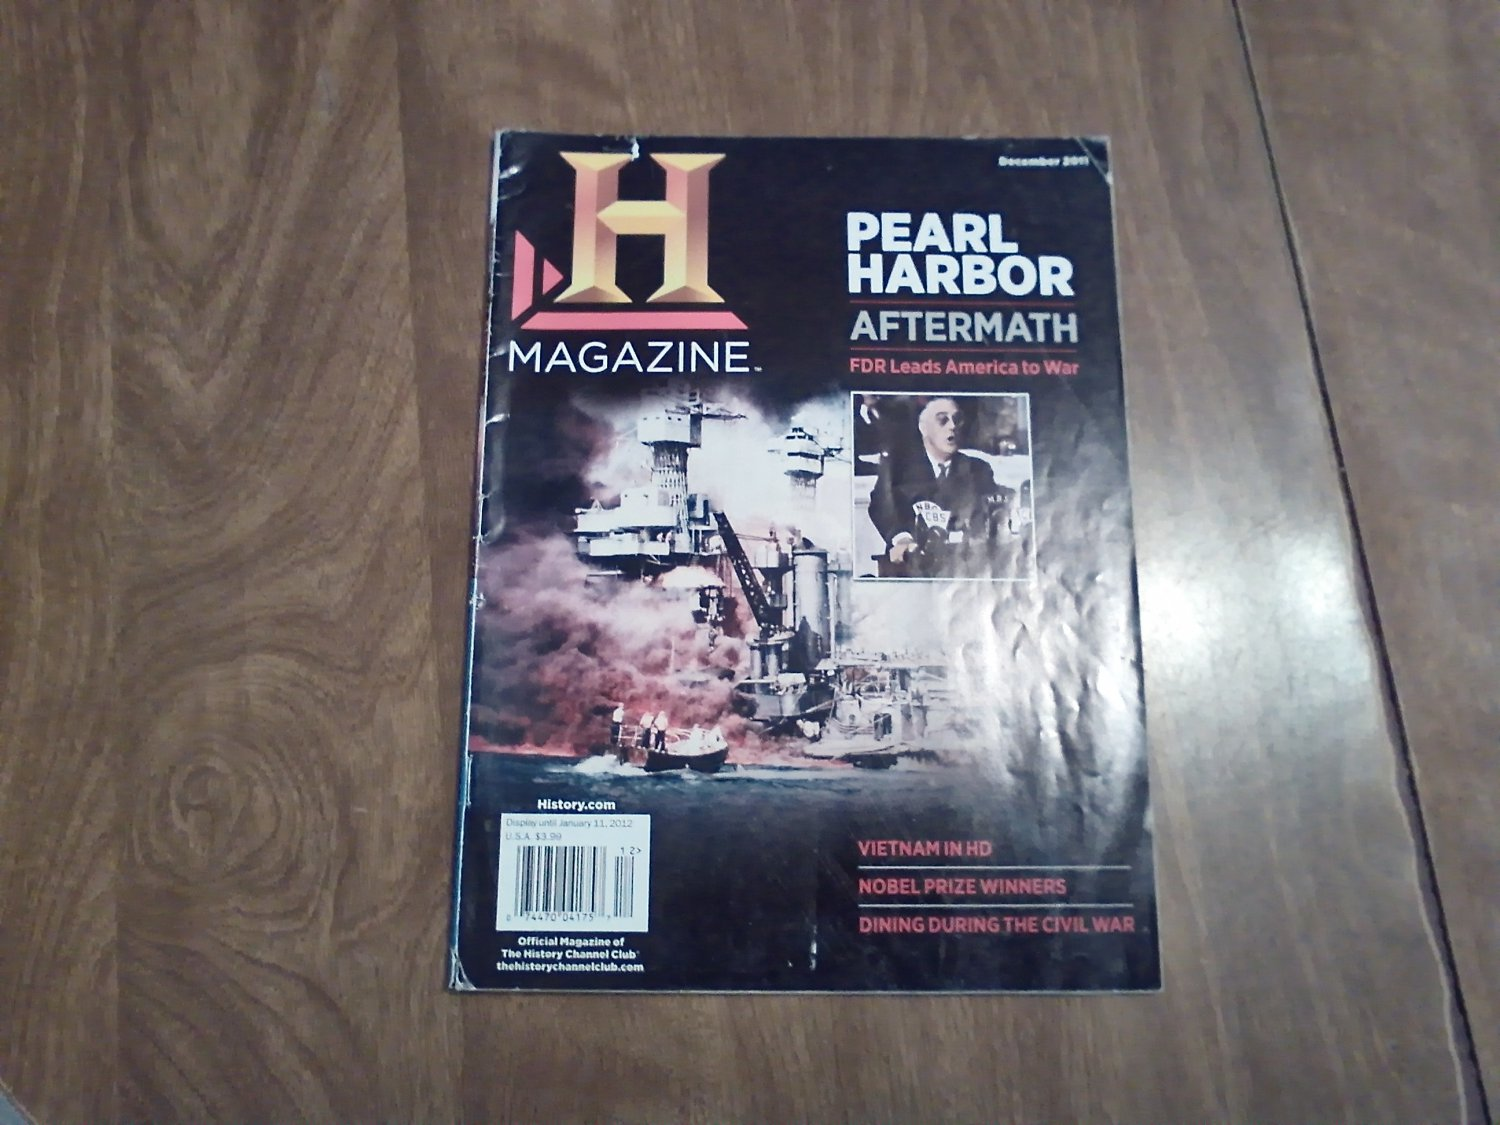 History Channel Magazine December 2011 Pearl Harbor Aftermath FDR America War Vol. 9 No. 6 (G4)